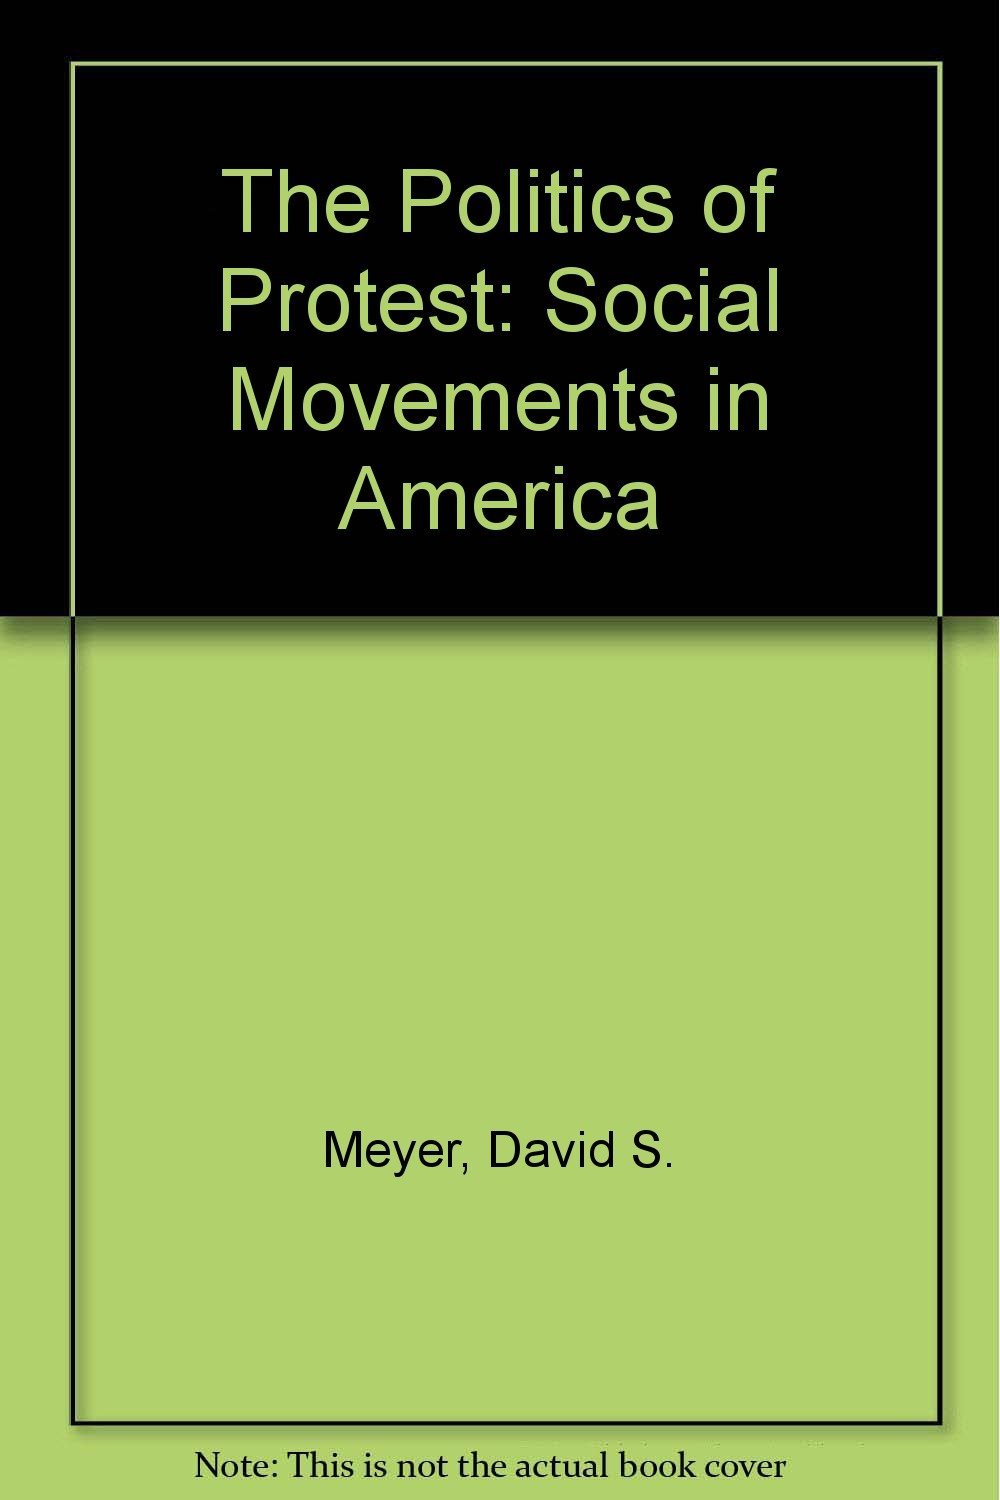 The Politics of Protest: Social Movements in America pdf